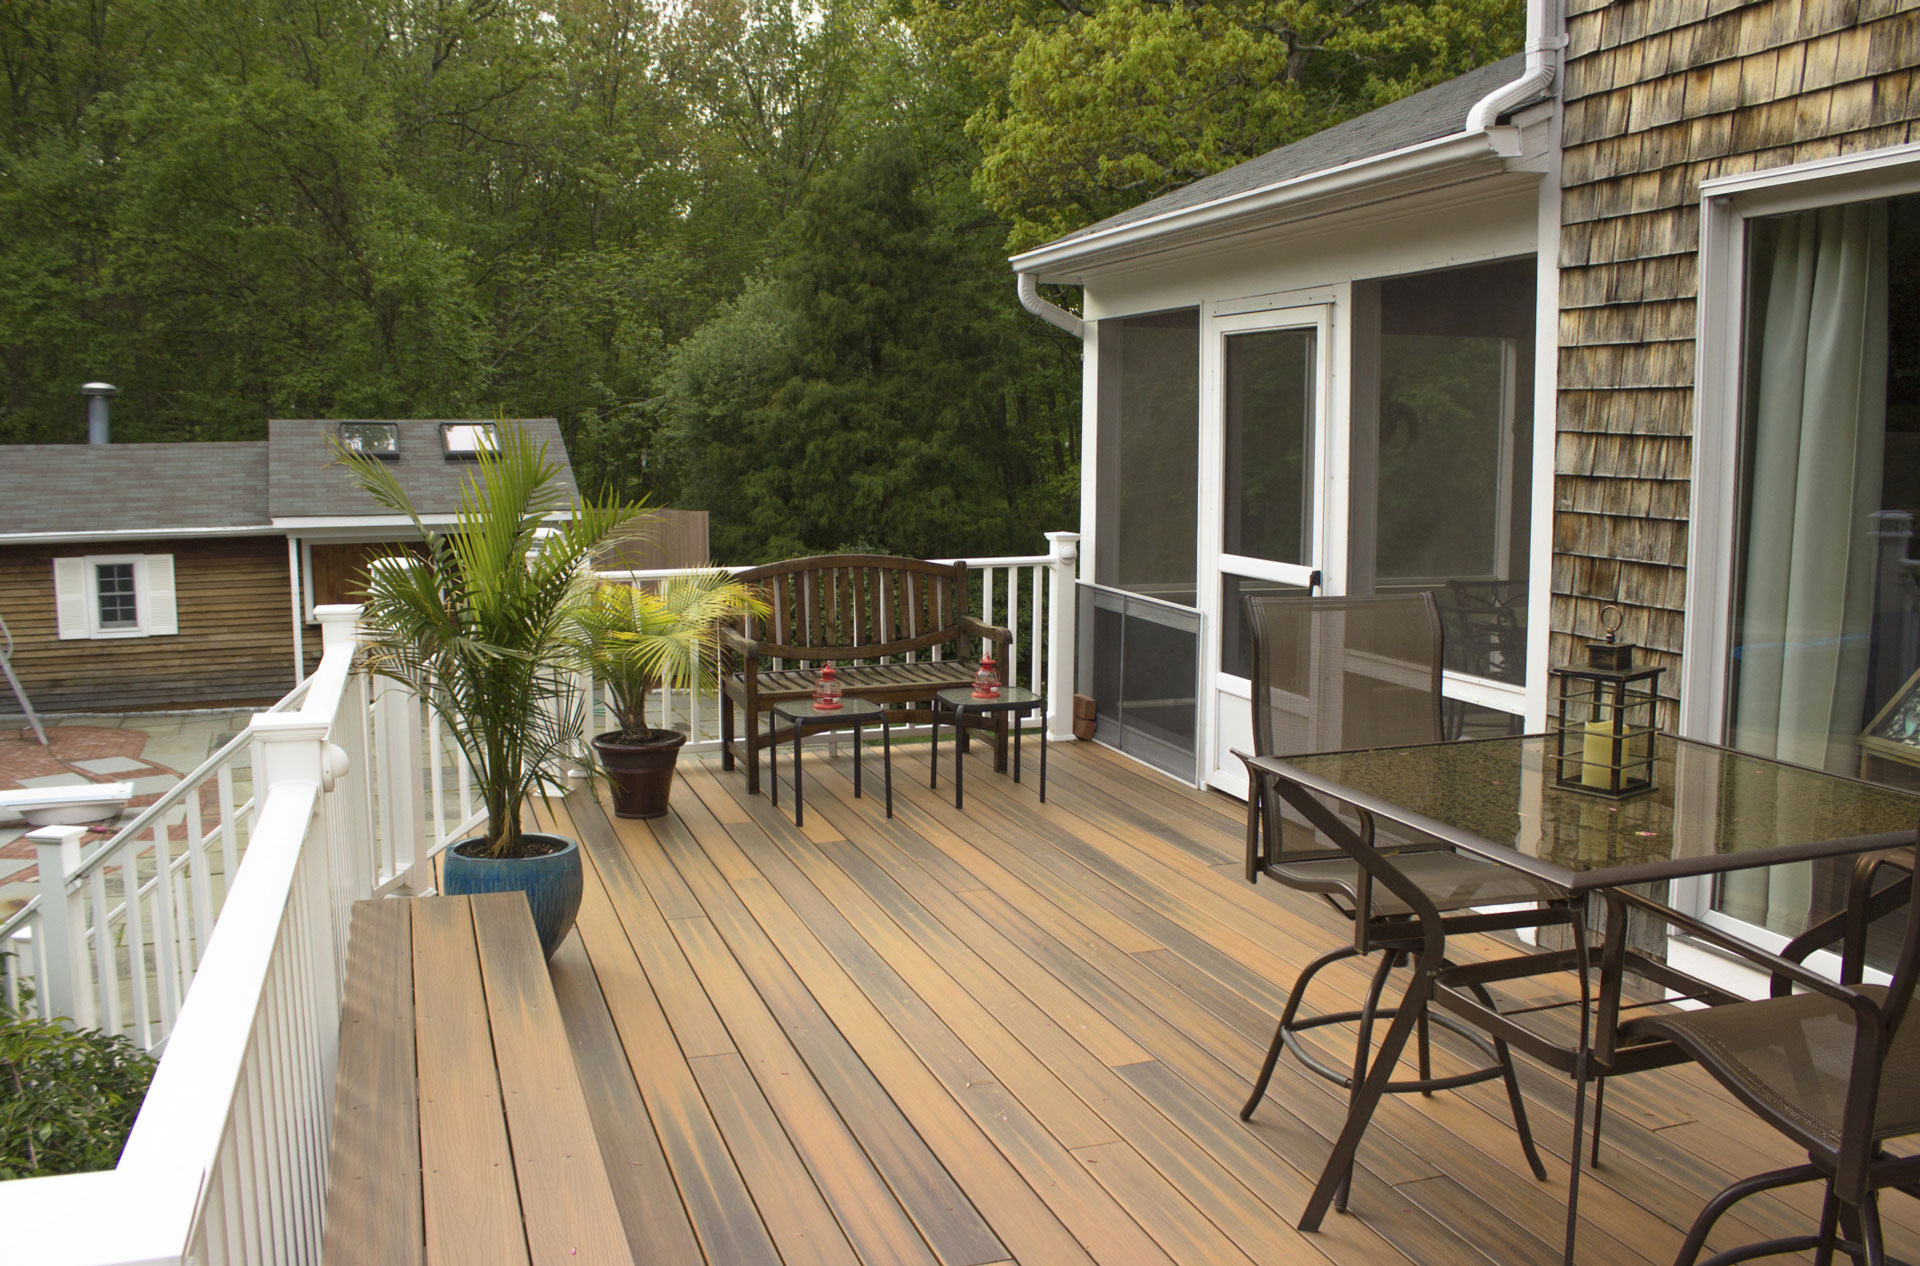 An oversized outdoor deck